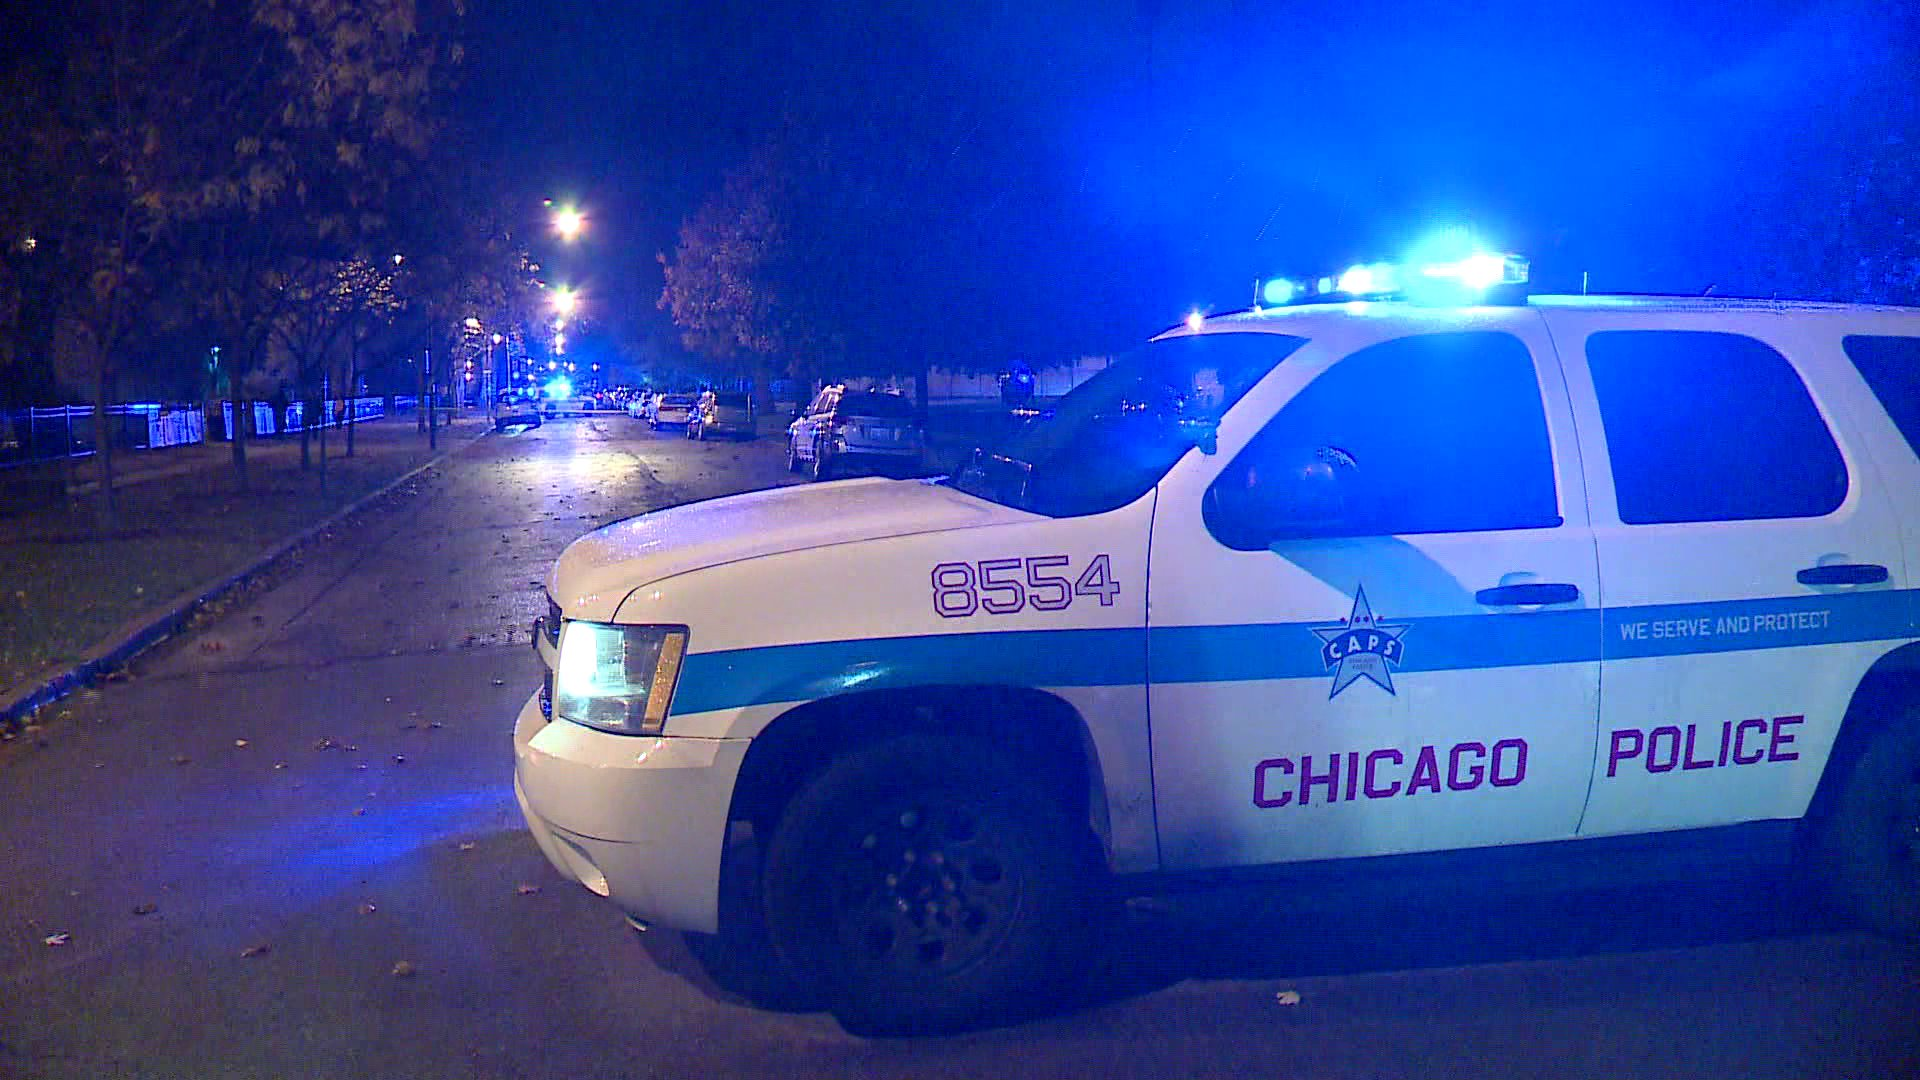 Racial Slur Heard on Chicago Police Radio Under Investigation